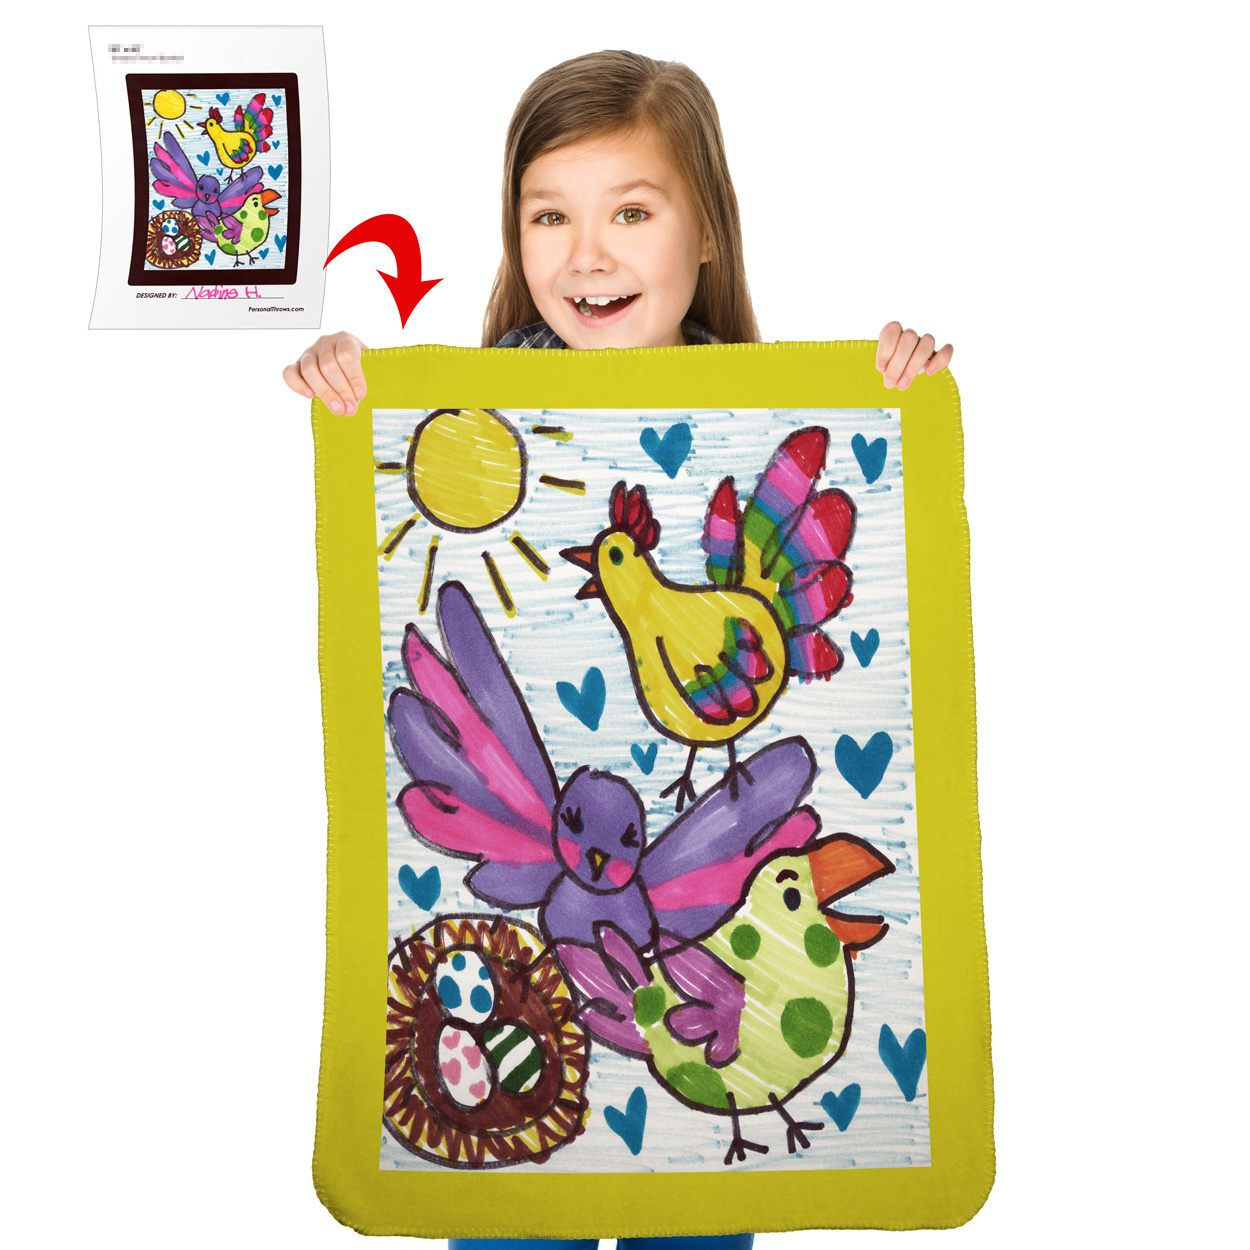 "Turn Your Child's Drawing into a 30"" x 40"" Polar Fleece Mini Blanket"